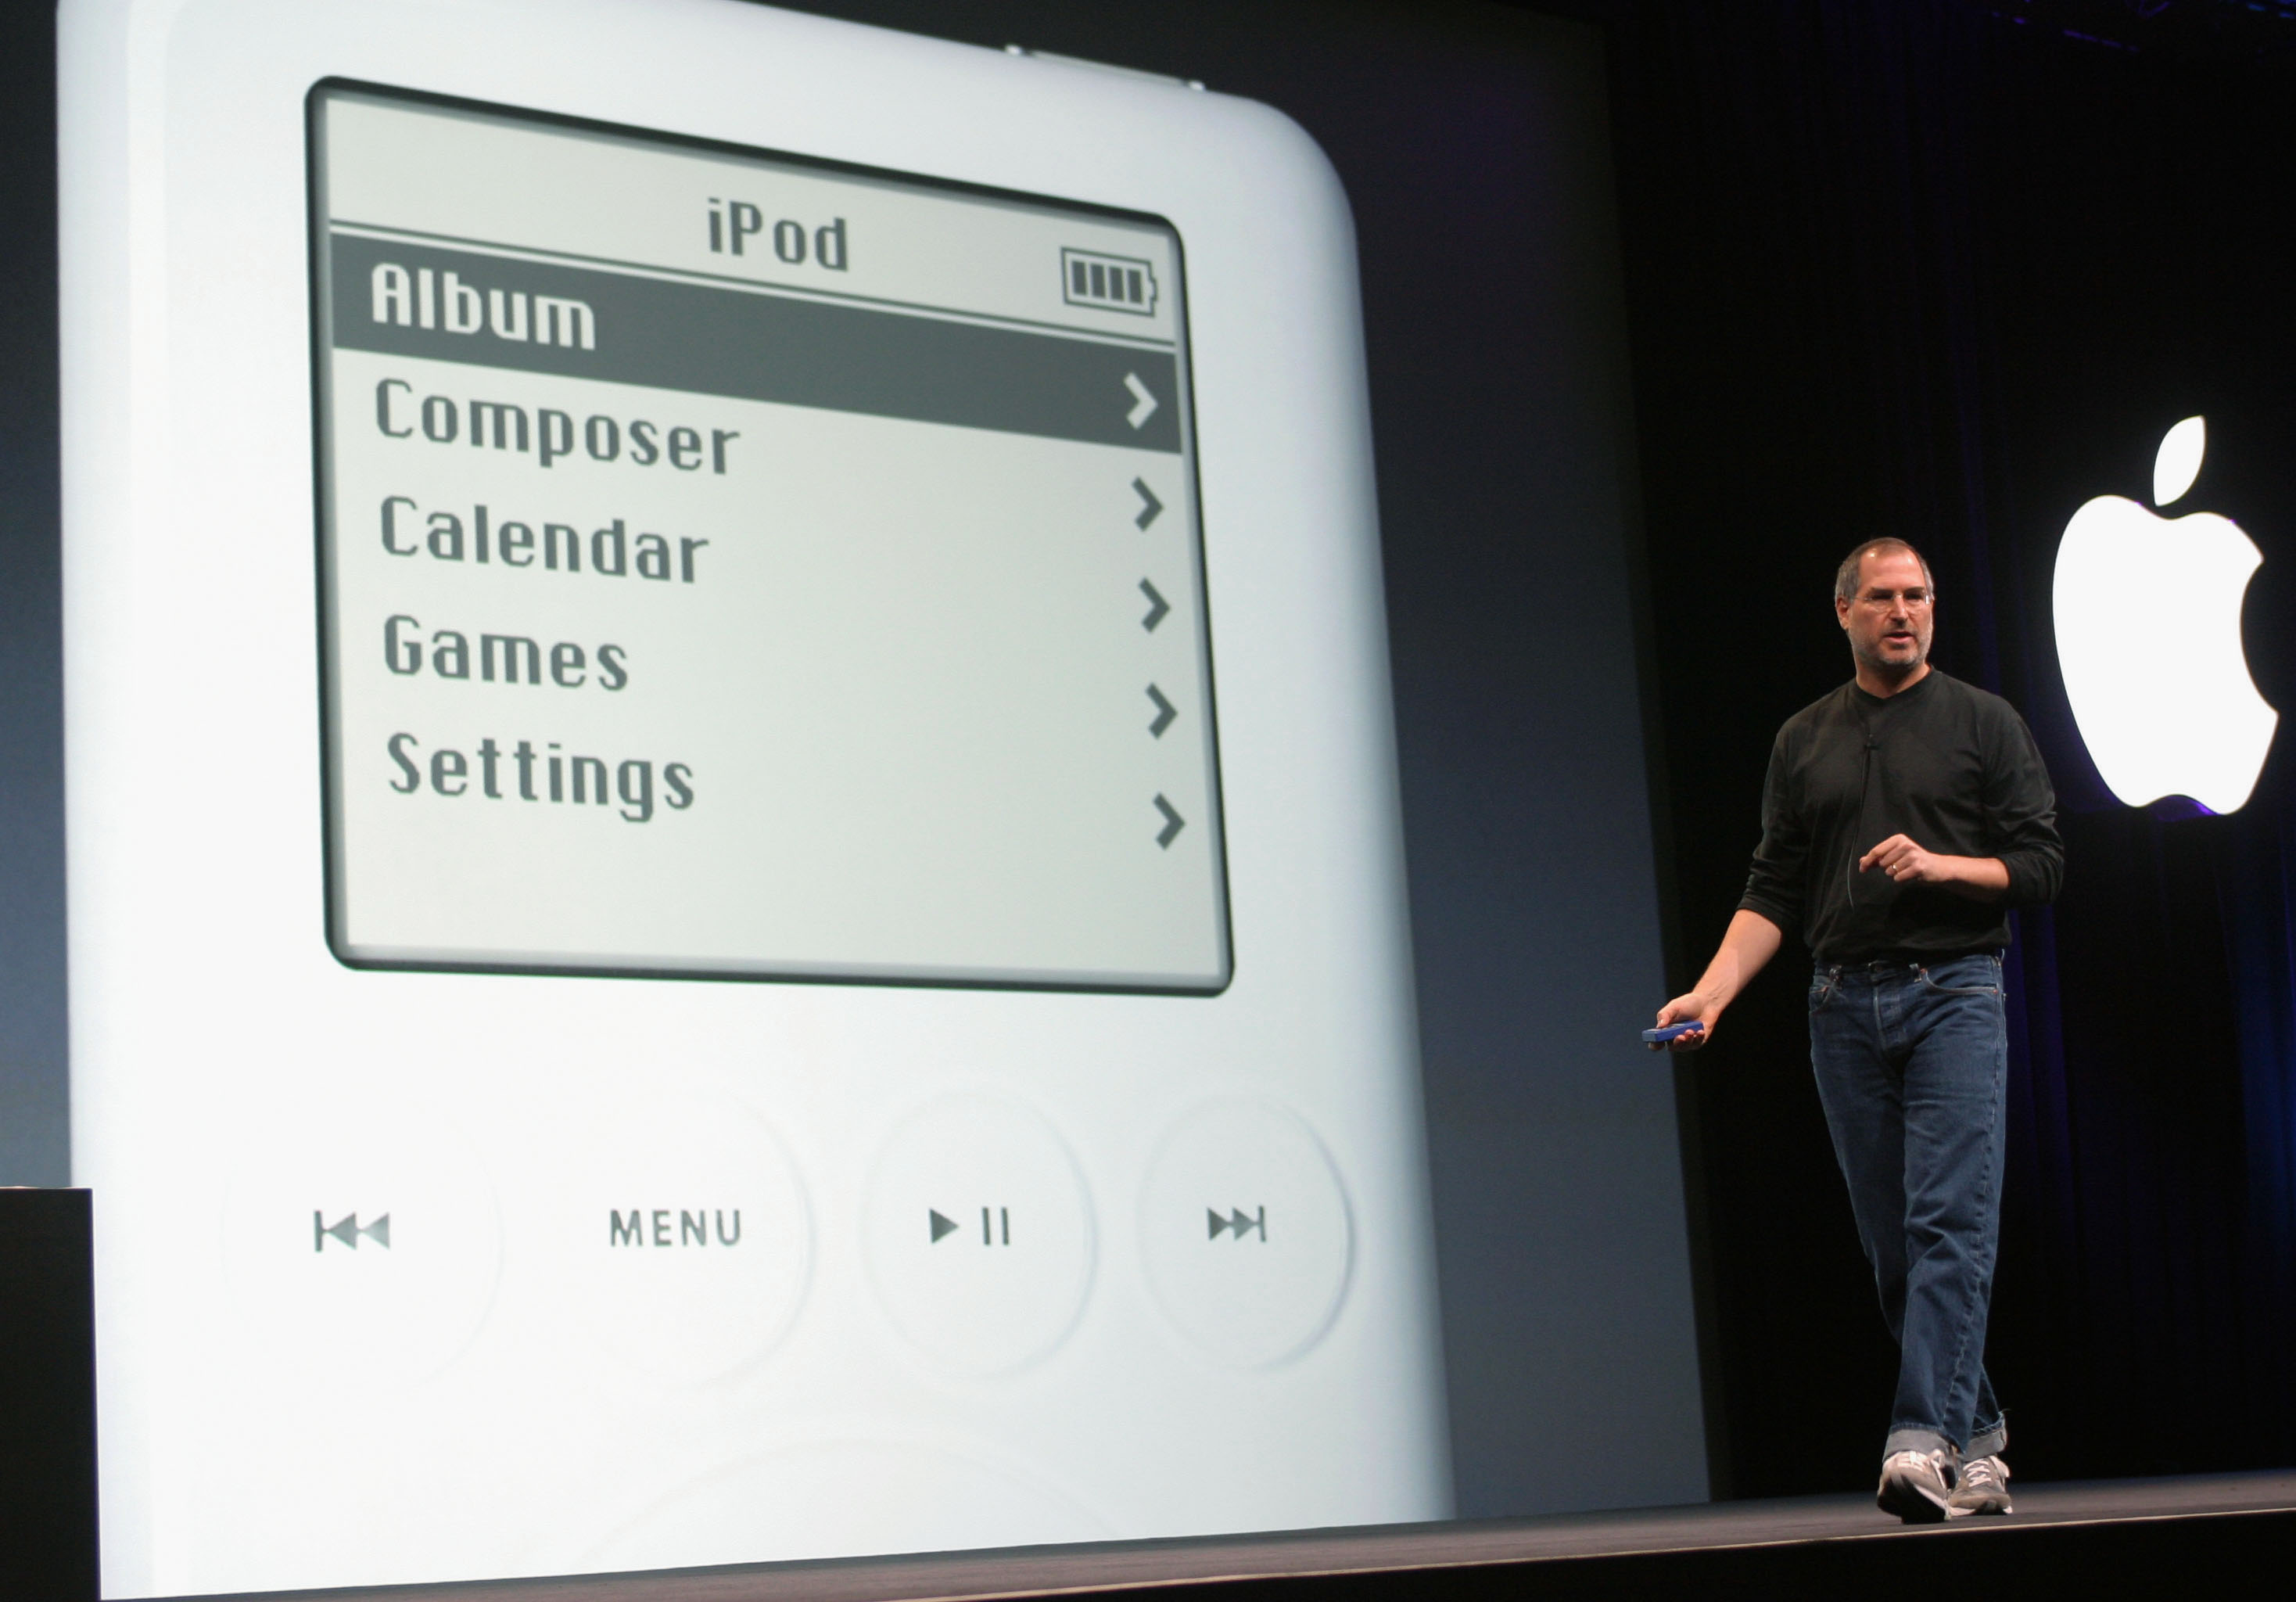 January & October 2001 - iTunes and iPod